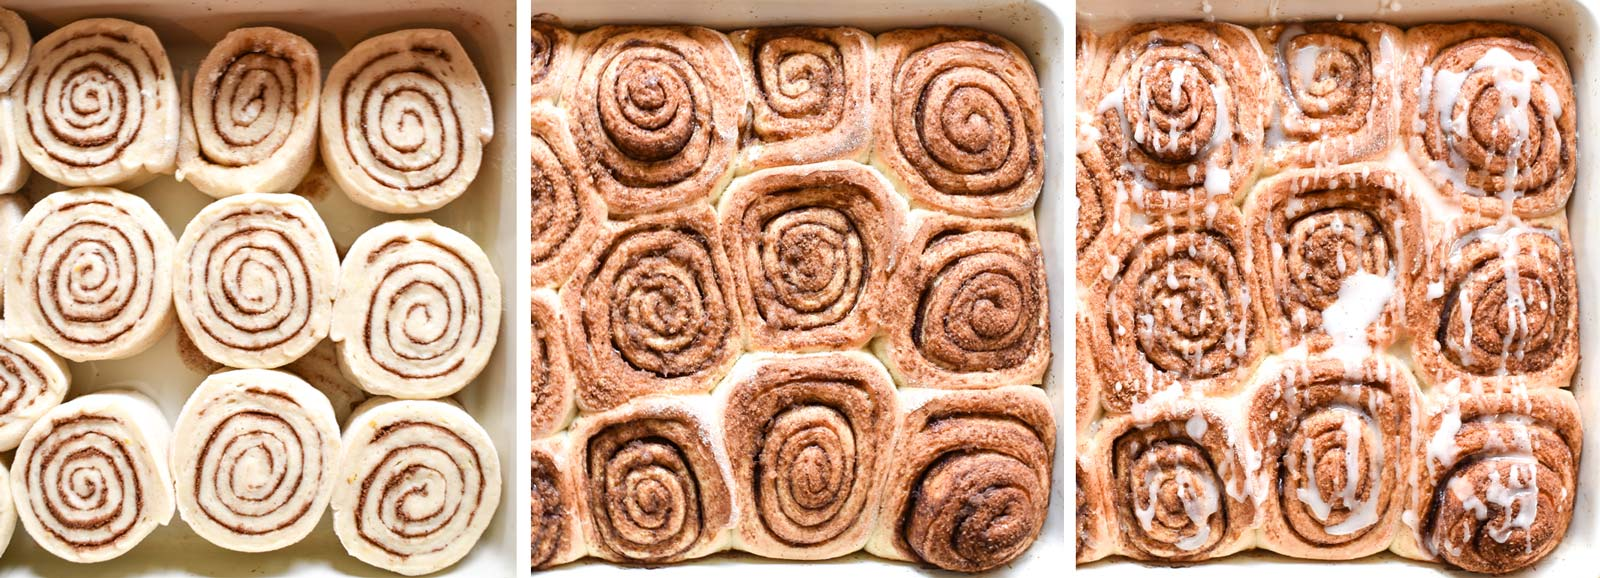 Dairy free cinnamon rolls recipe. Smile Cafe allergy friendly eats for kids